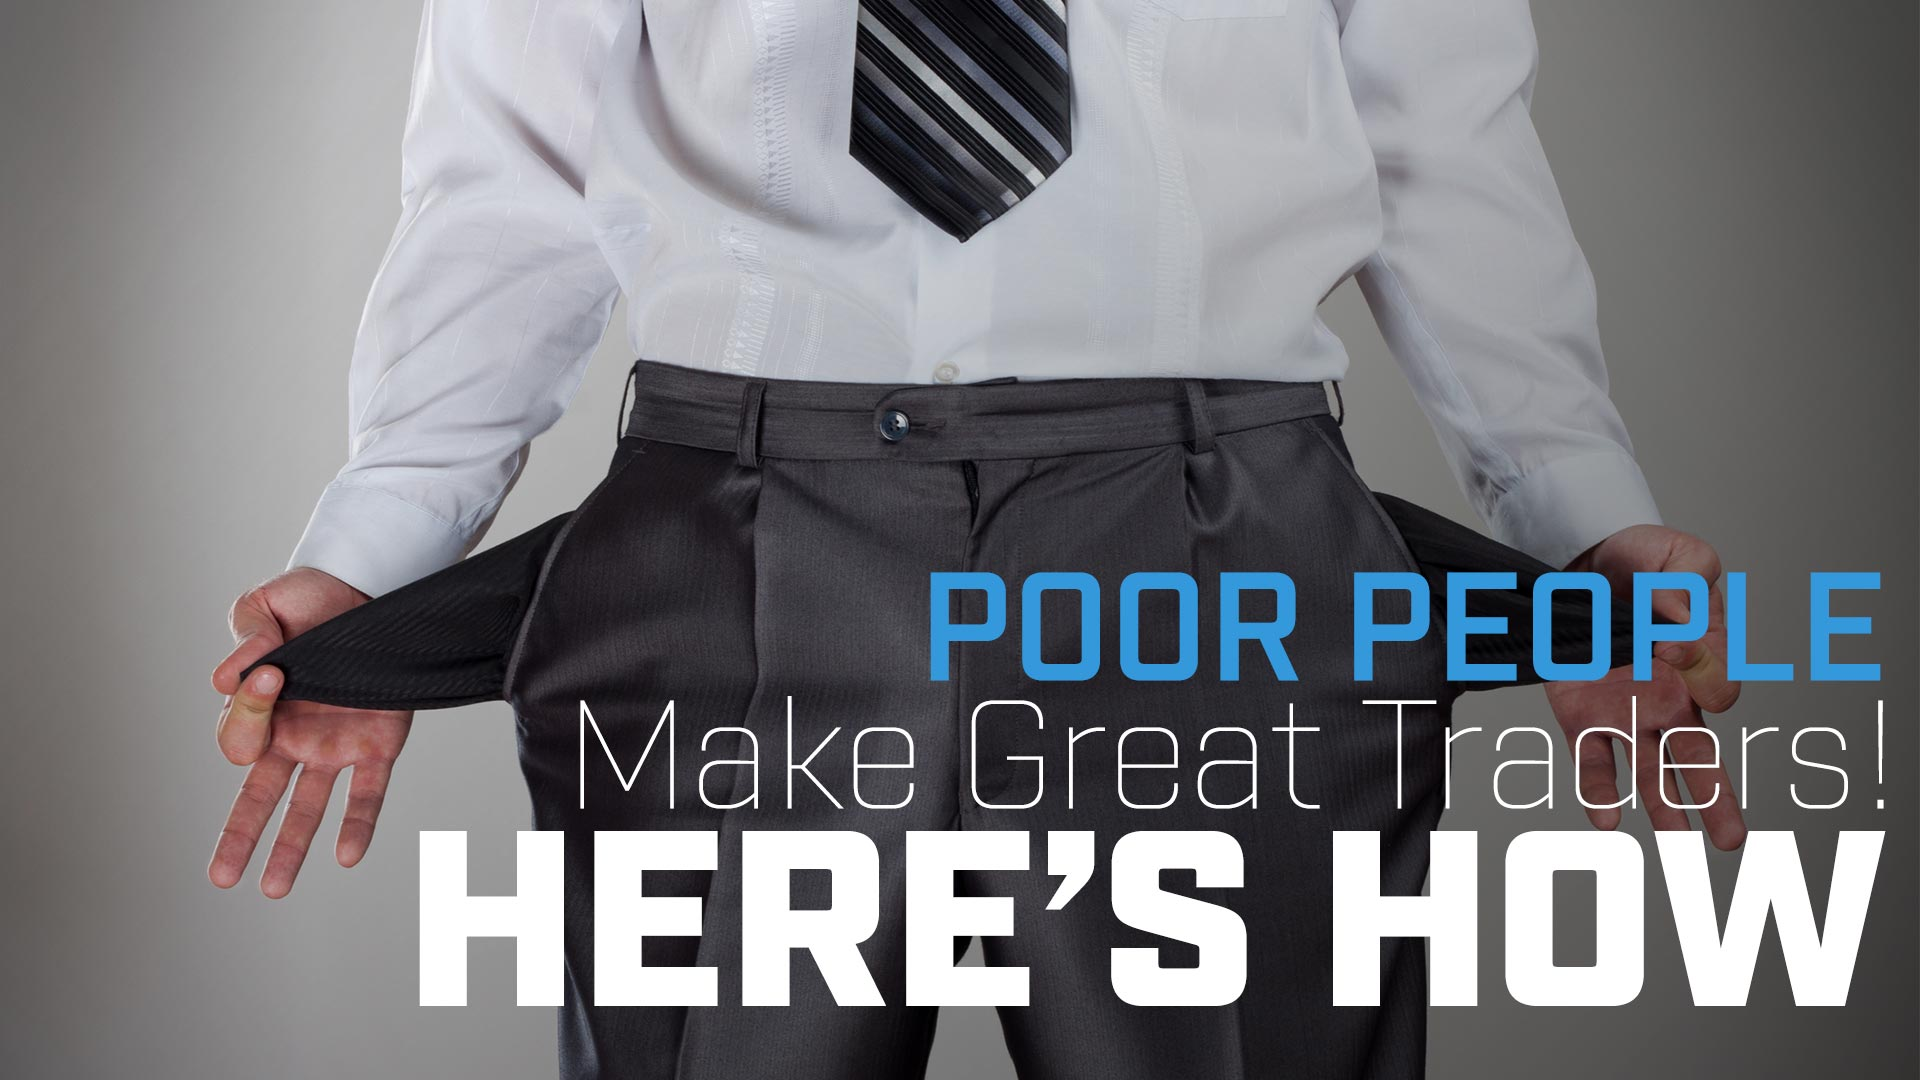 Poor People Make Great Traders! Here's How.